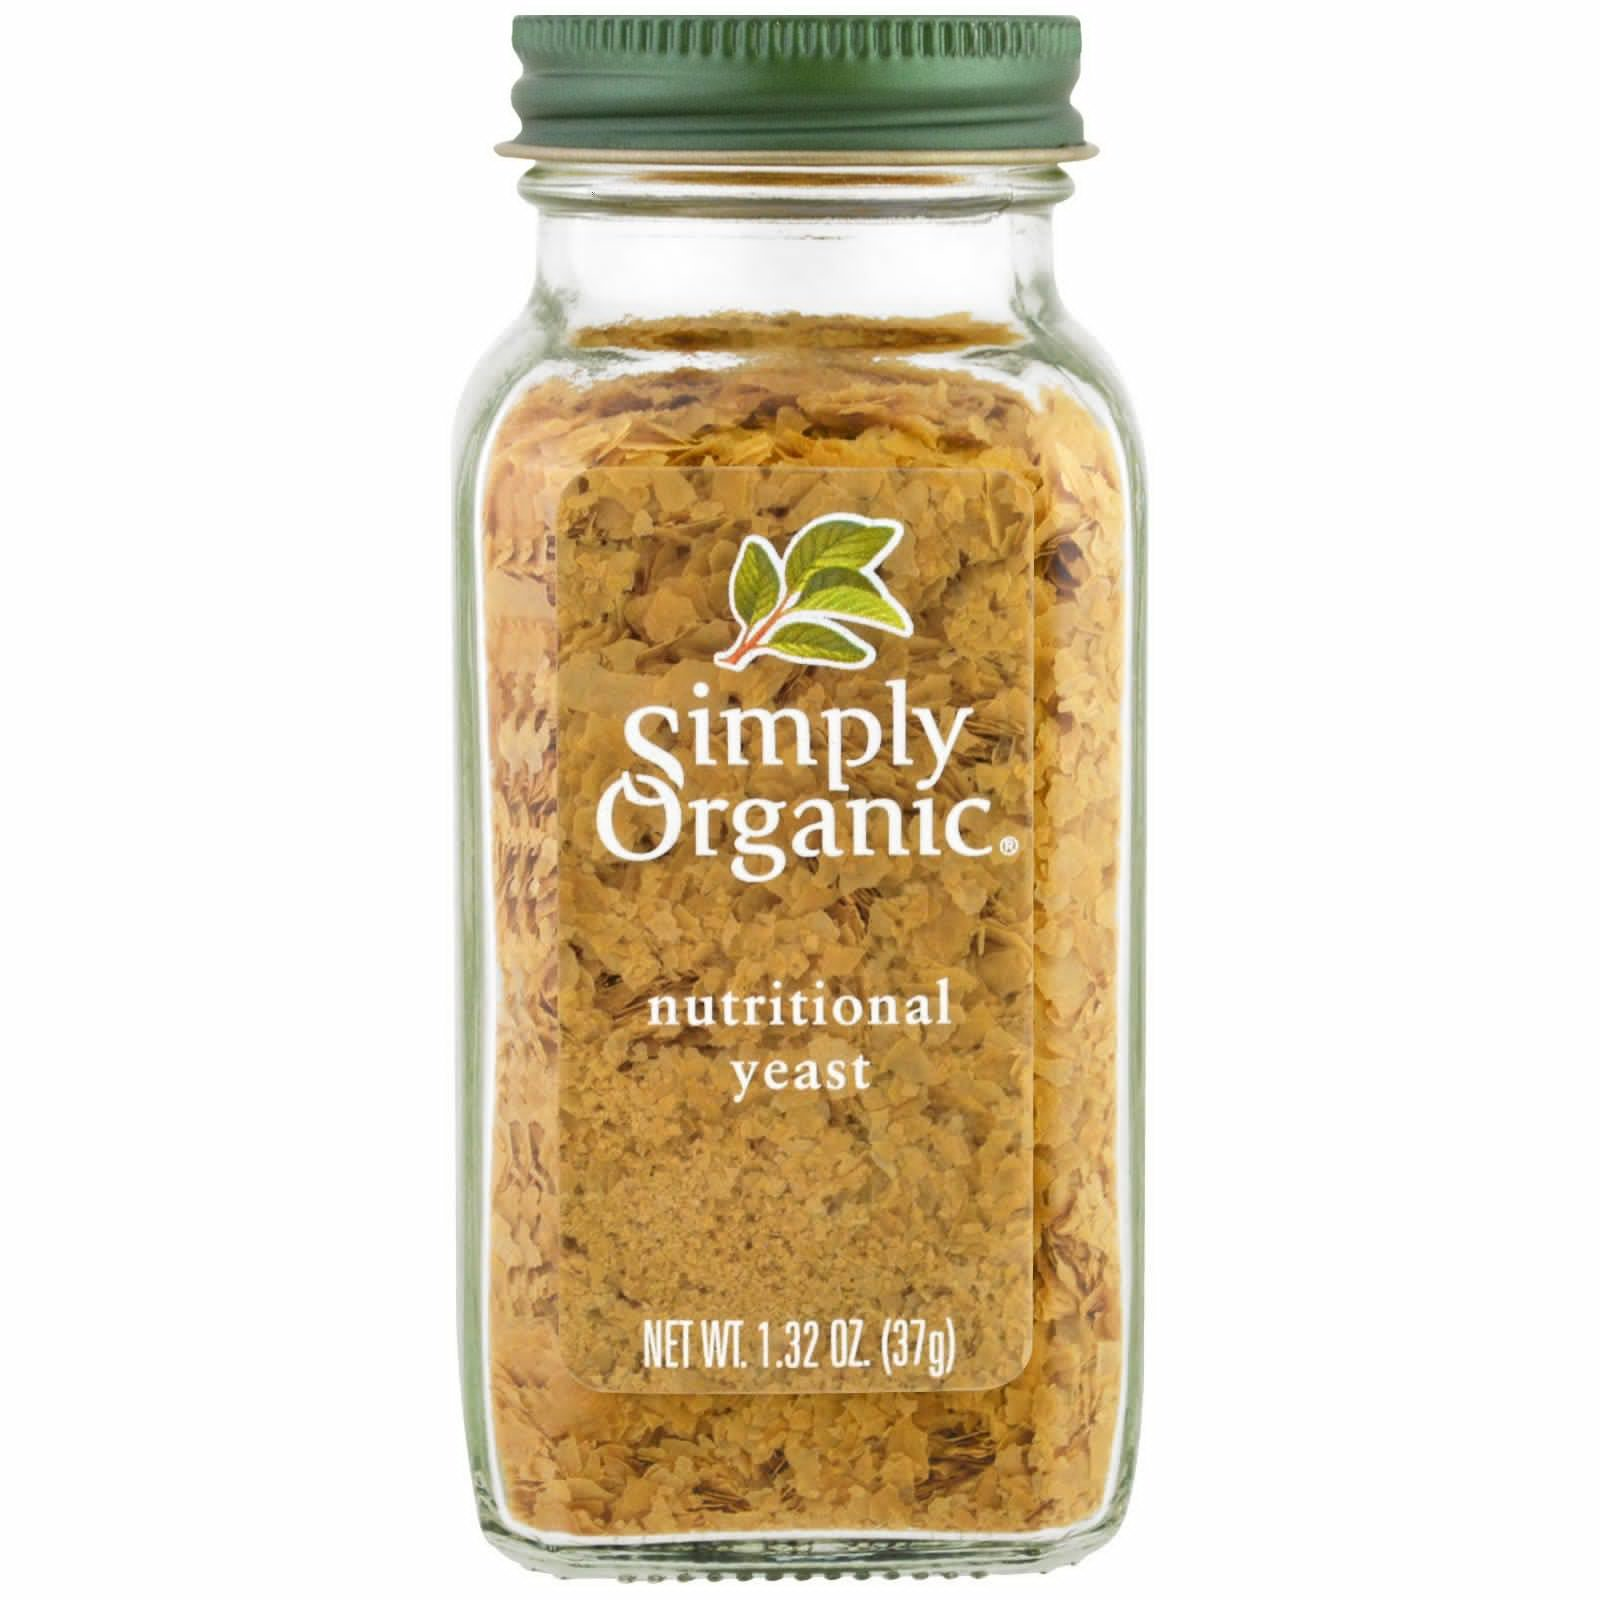 Simply Organic, Organic, Nutritional Yeast, 1.32 oz(Pack of 2)